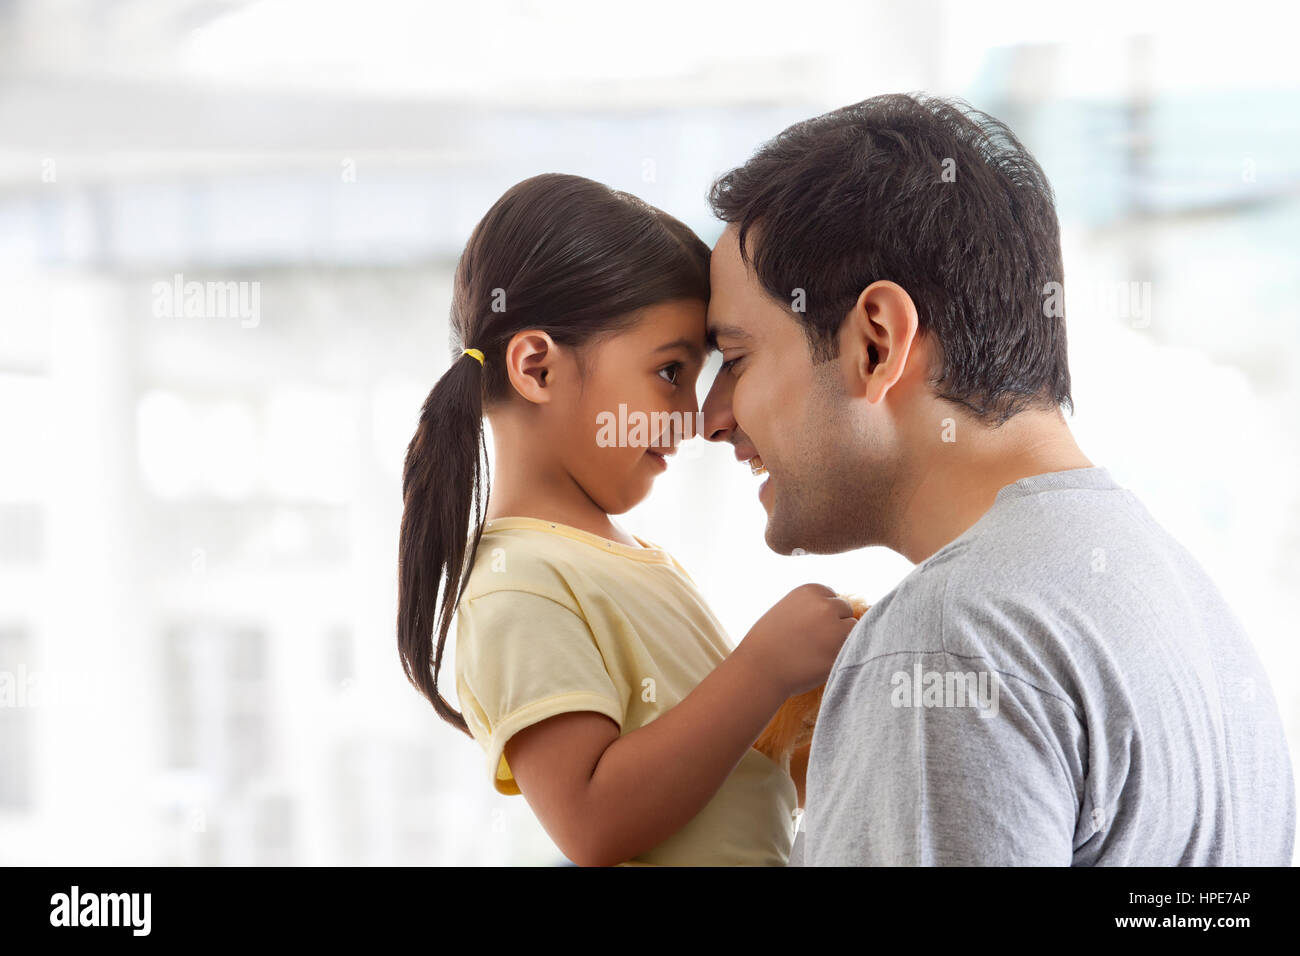 Father and daughter rubbing noses together - Stock Image